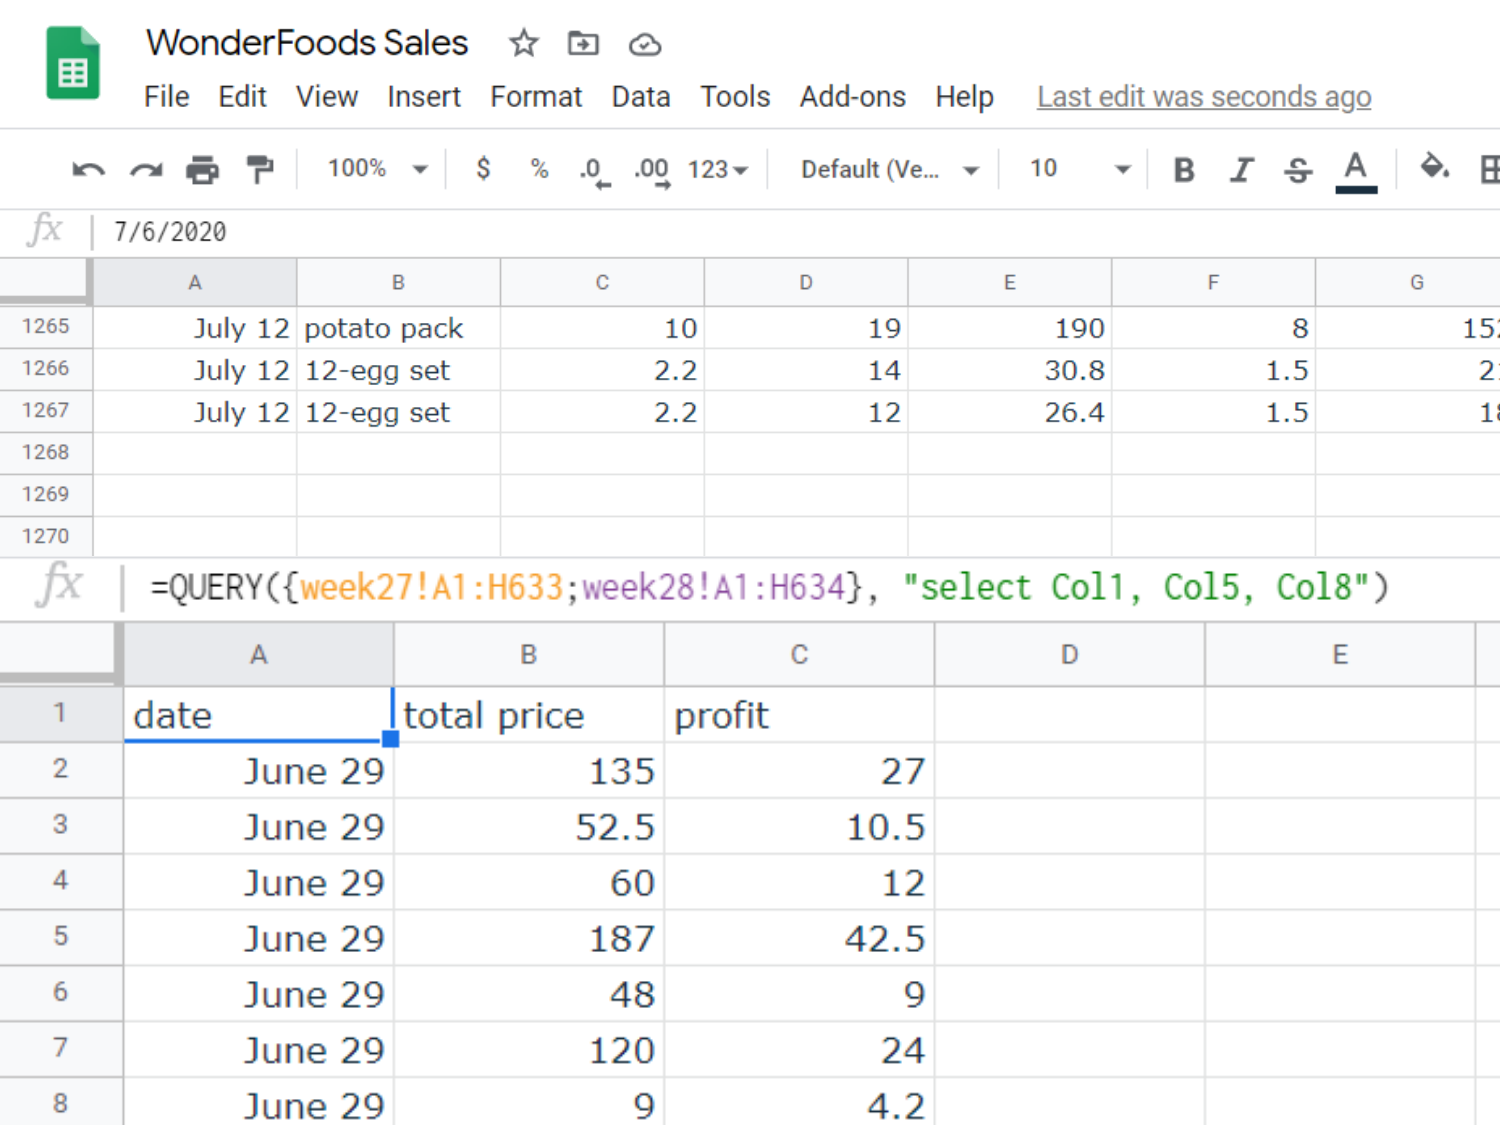 end of data displayed by query. There are 1267 rows loaded by the QUERY command. Selected columns loaded: date of entry, total price of order, and profit from the order.